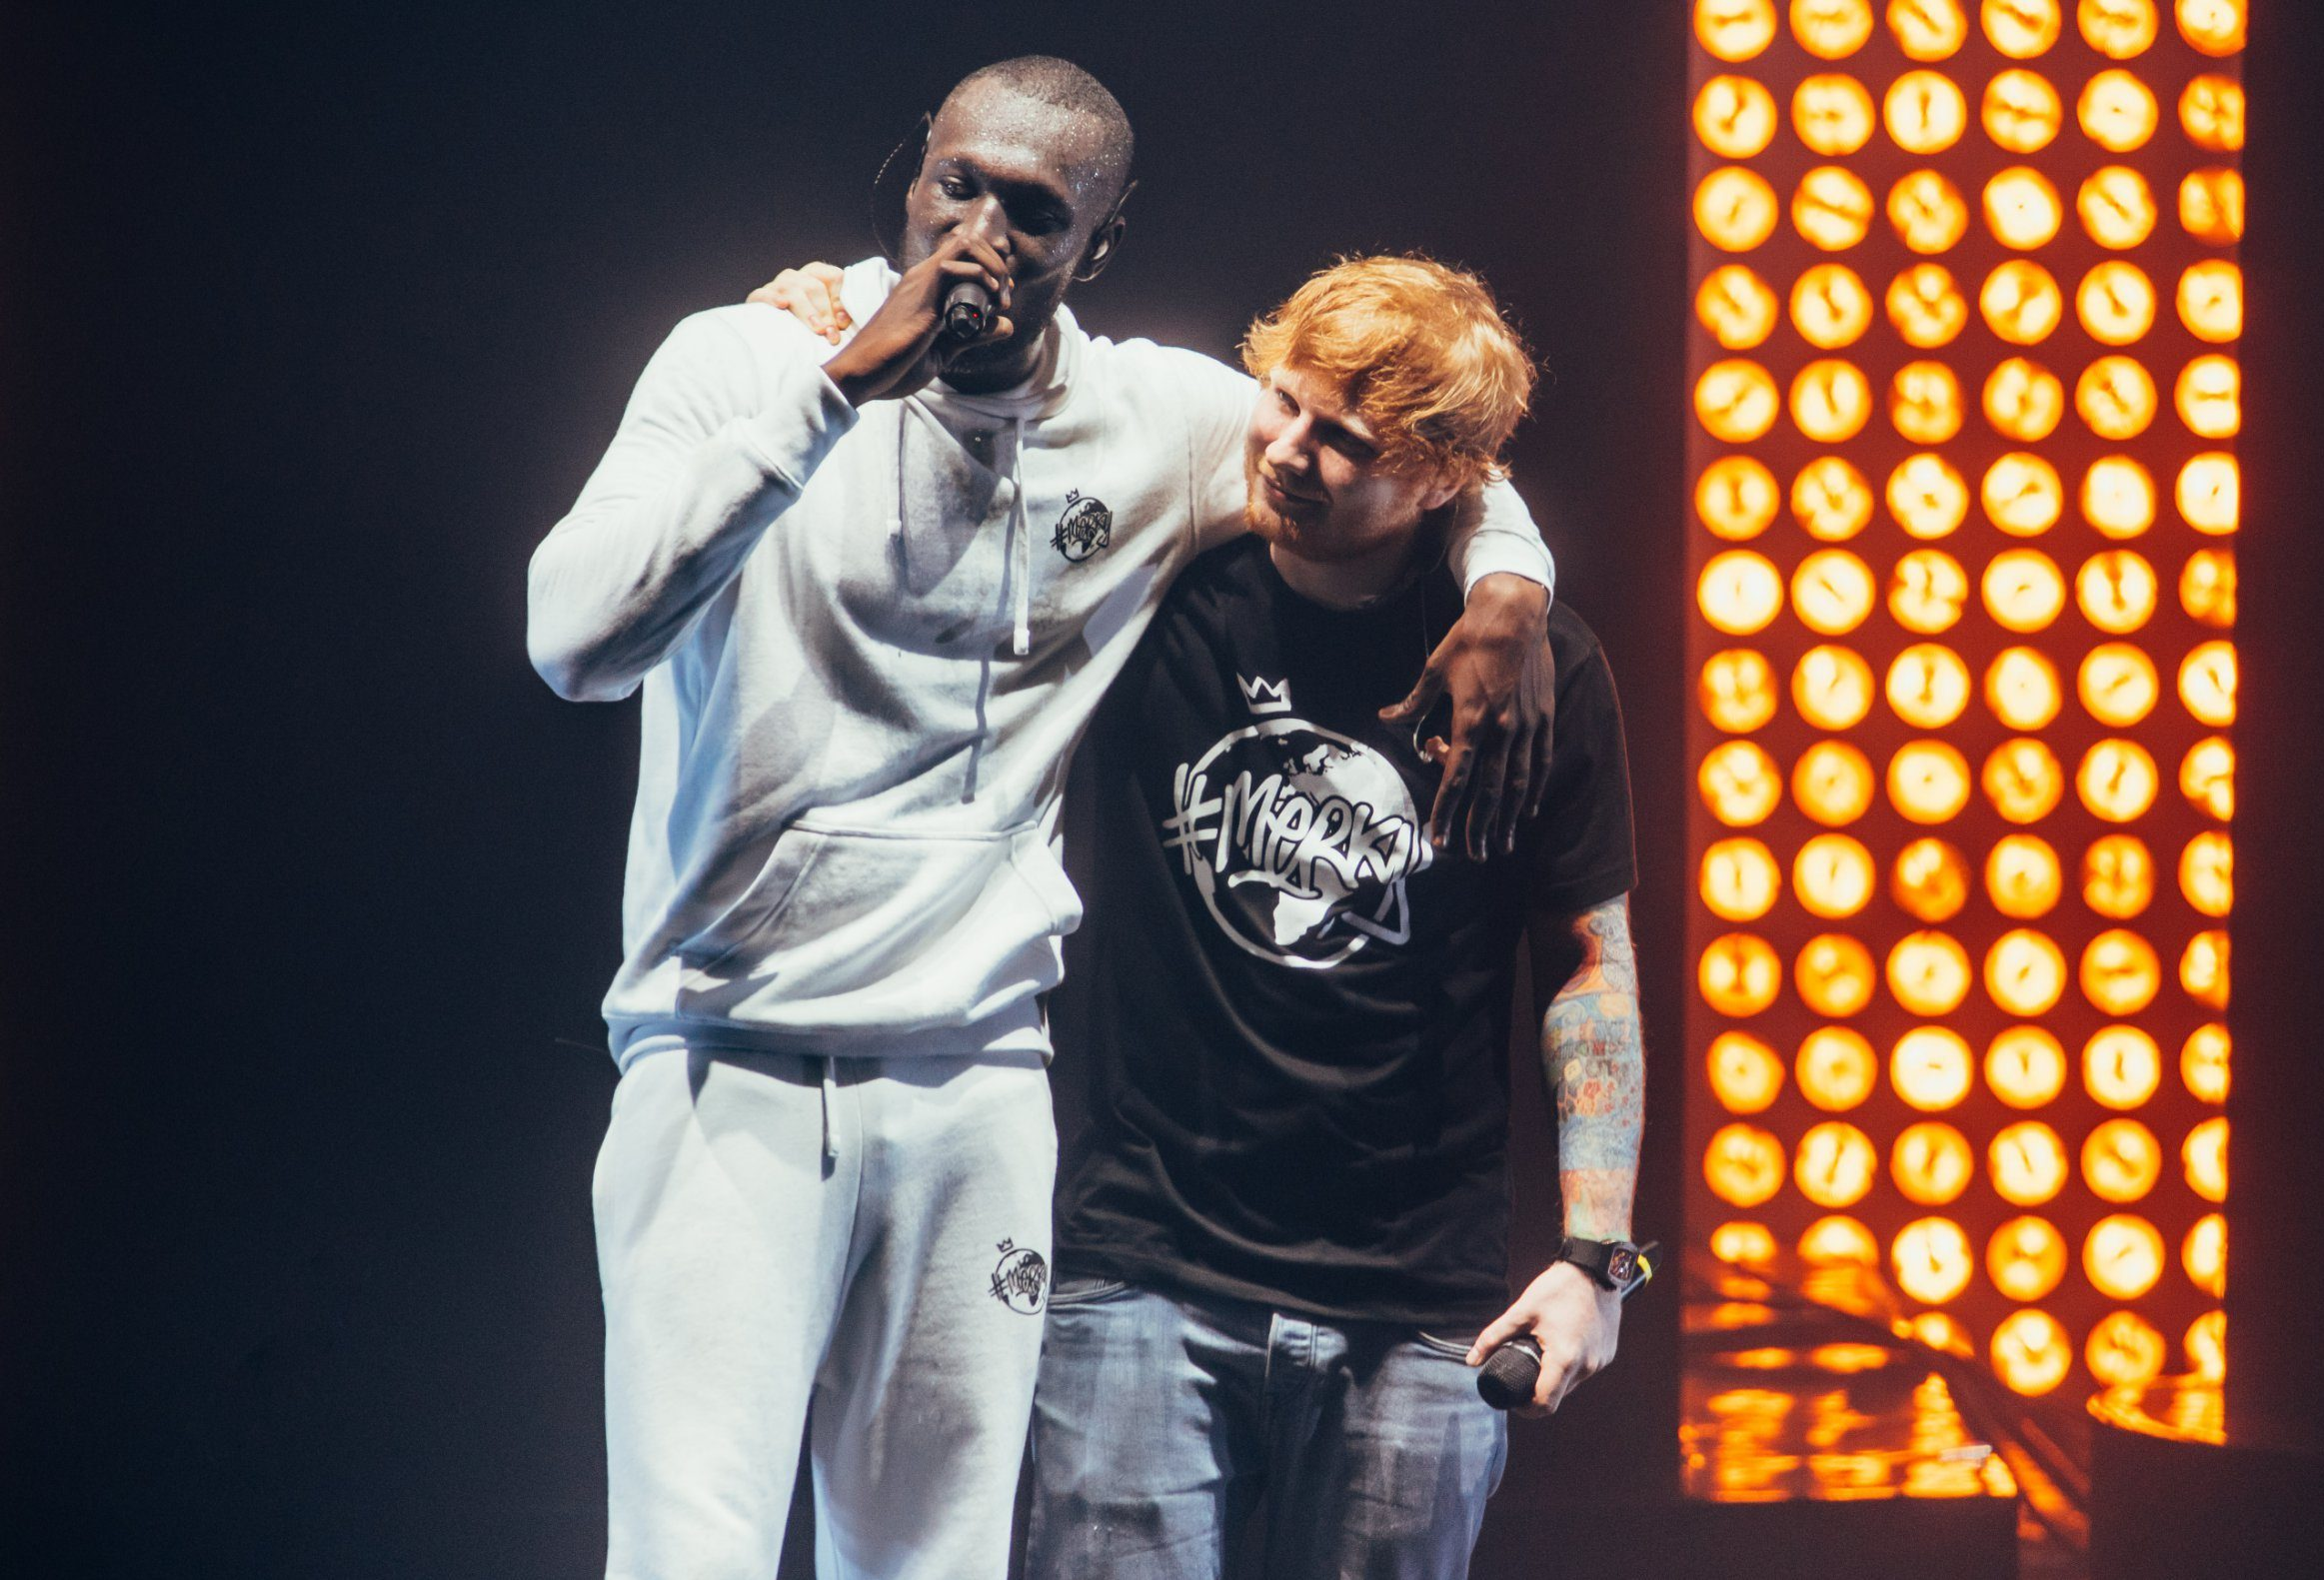 Stormzy says he might 'faint' if Ed Sheeran doesn't like his new album